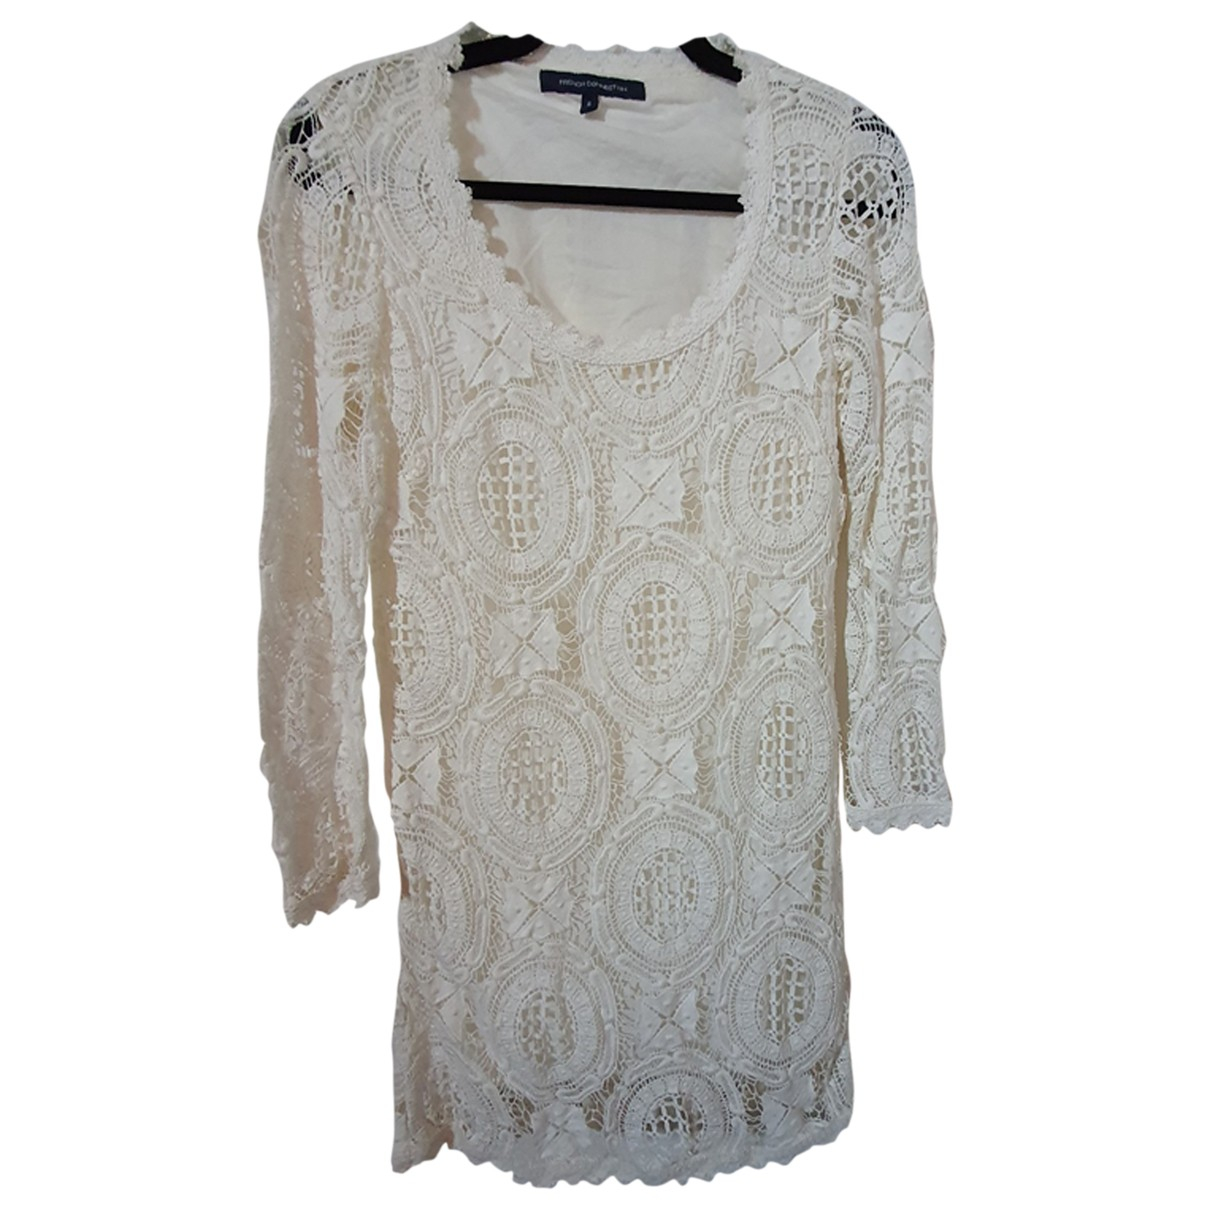 French Connection \N Kleid in  Weiss Spitze